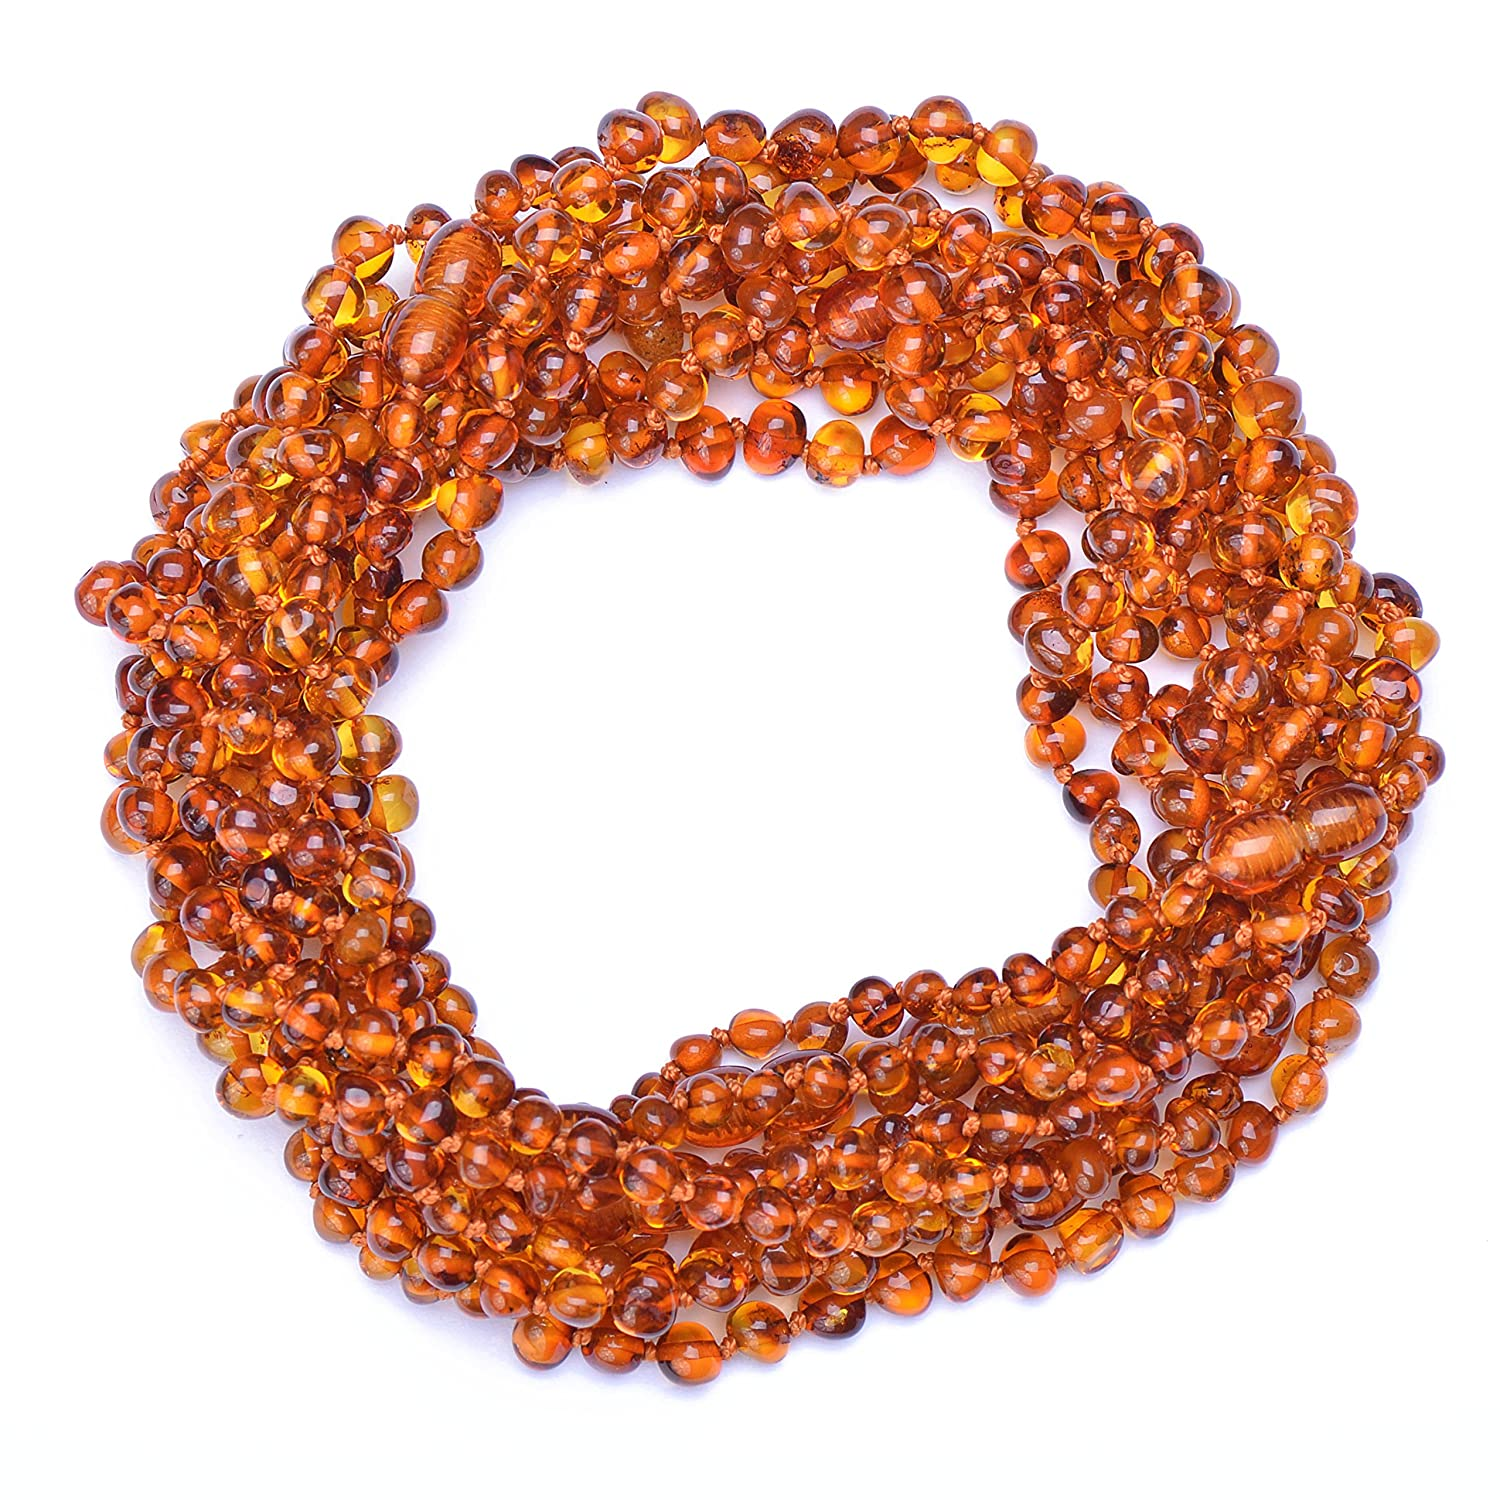 Amber Wholesale - 10 Amber Teething Necklaces for babies - Handmade from Authentic Baltic Amber Genuine Amber